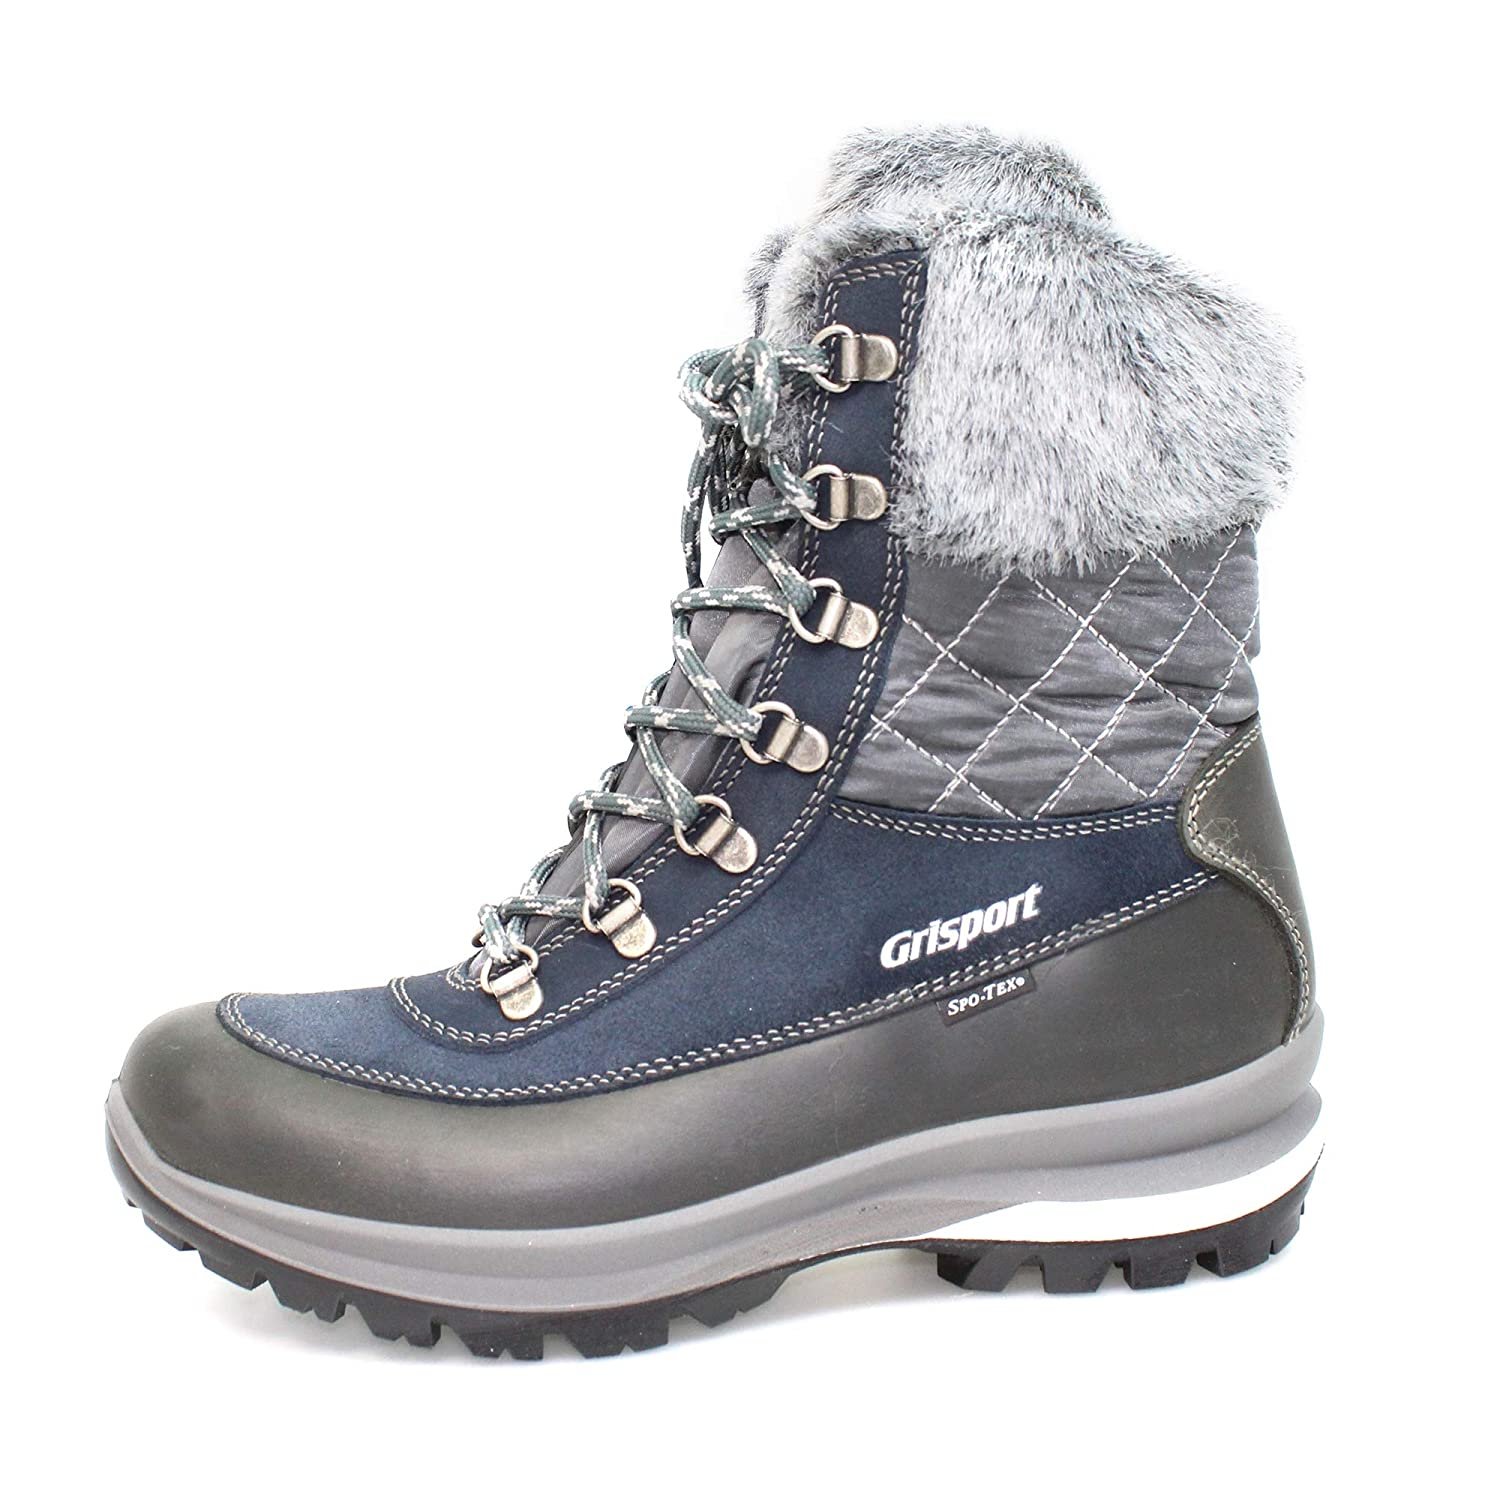 Grisport Women s Lady Viking Low Rise Hiking Boots  Amazon.co.uk  Shoes    Bags d025b002d